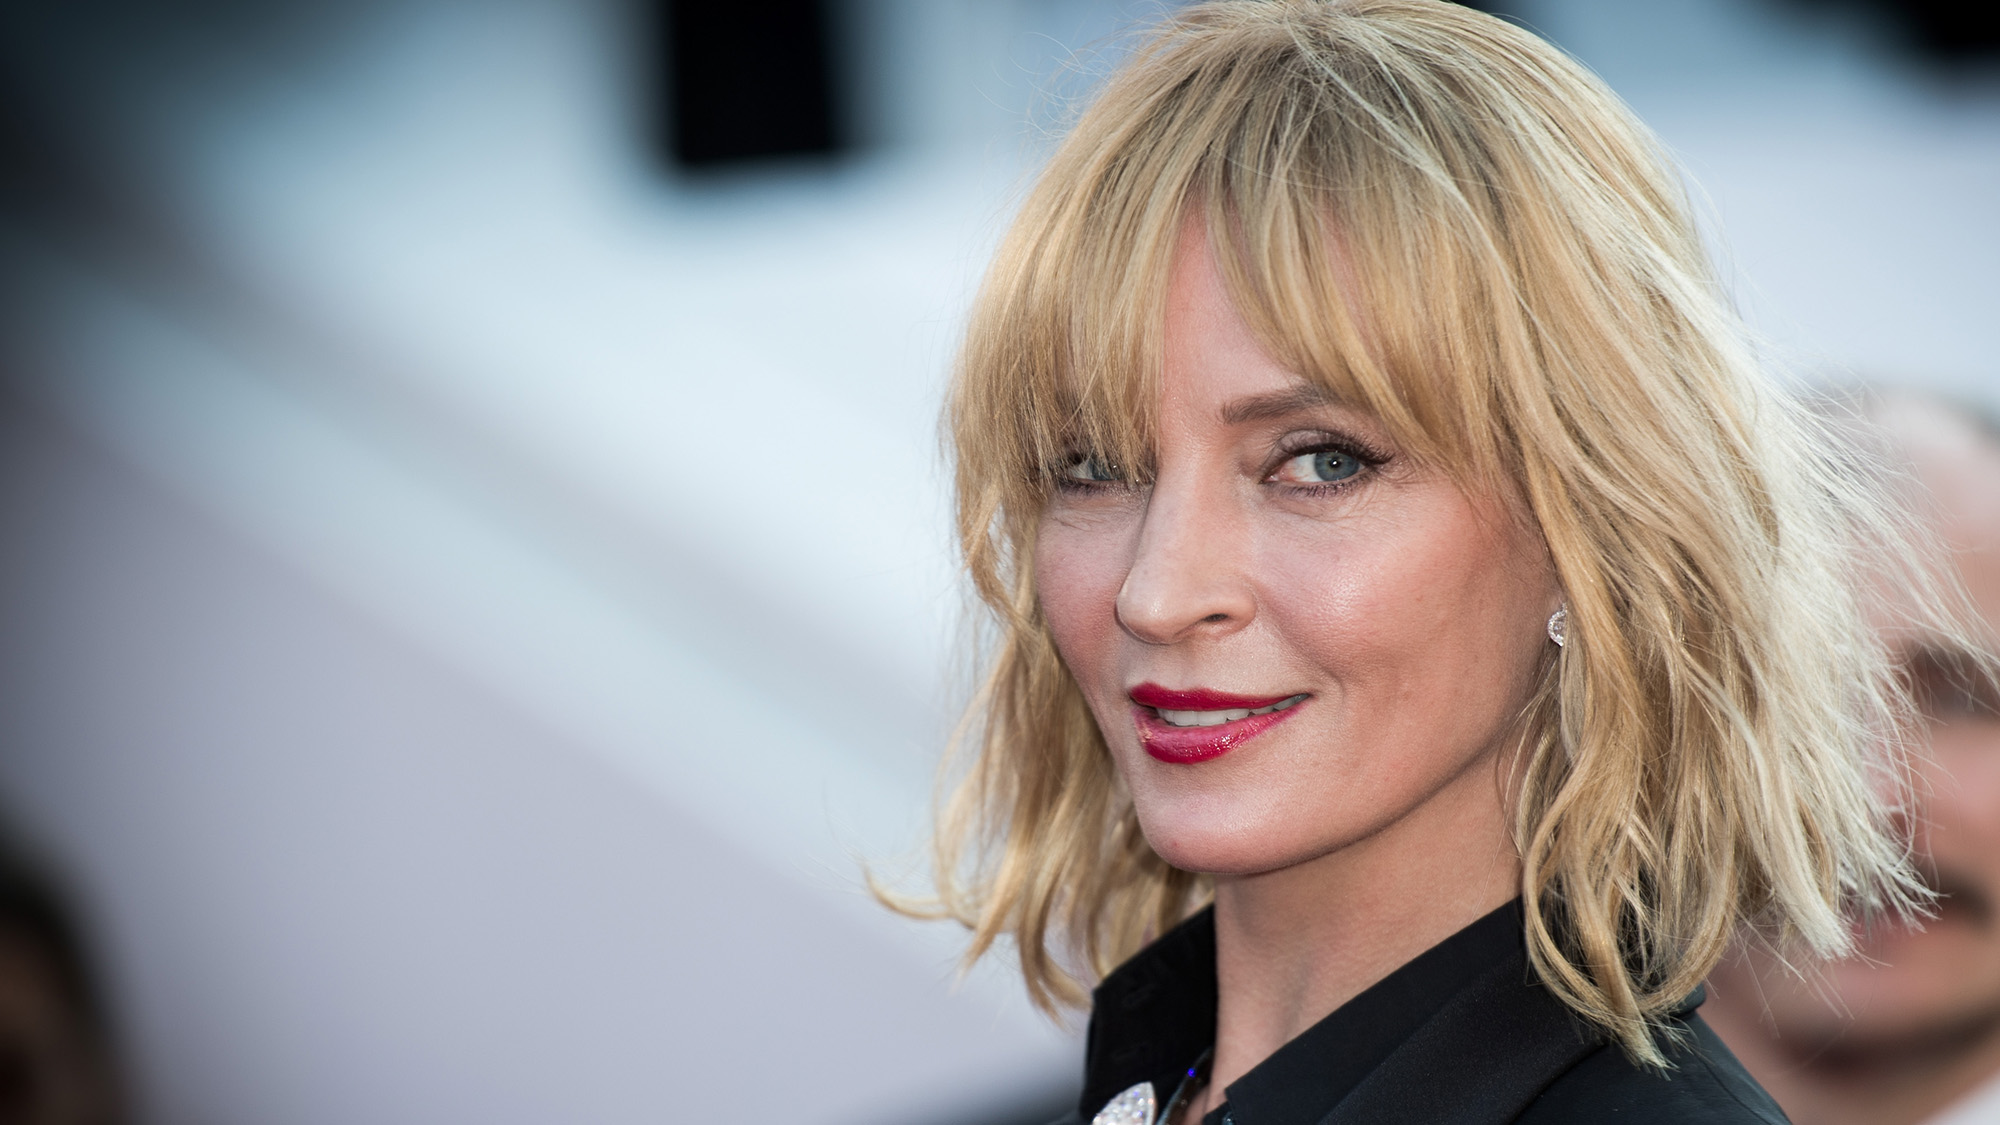 Uma Thurman naked (55 fotos), pictures Feet, Instagram, bra 2019